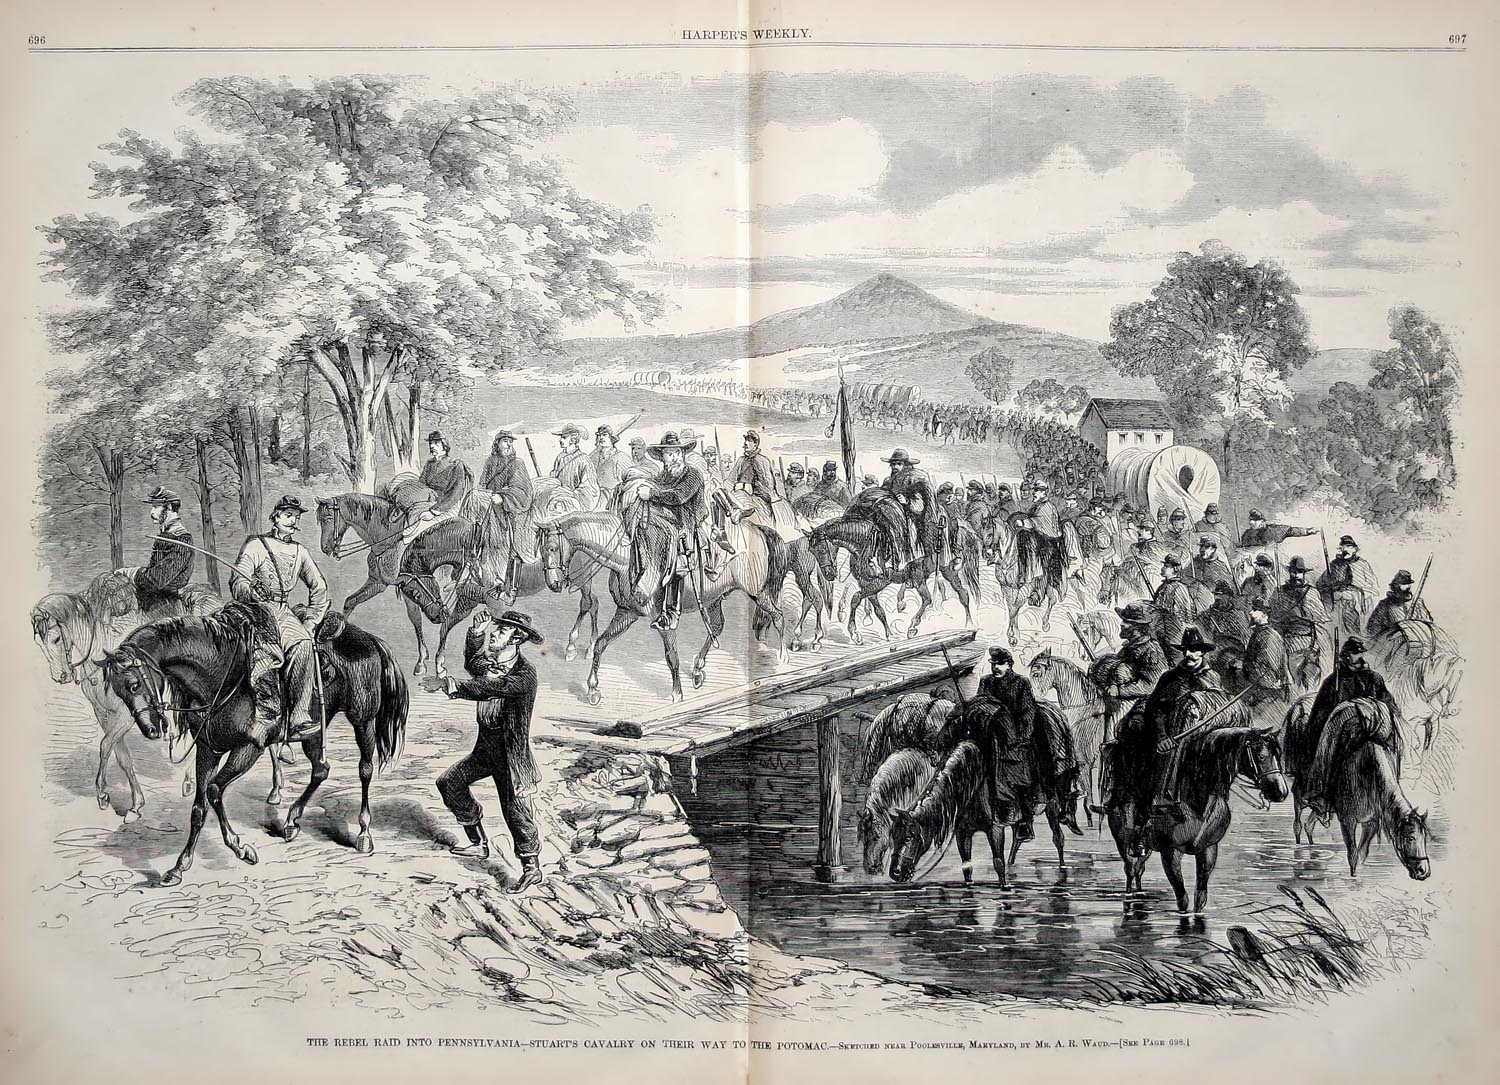 Stuarts Cavalry Raid, from Harpers Weekly